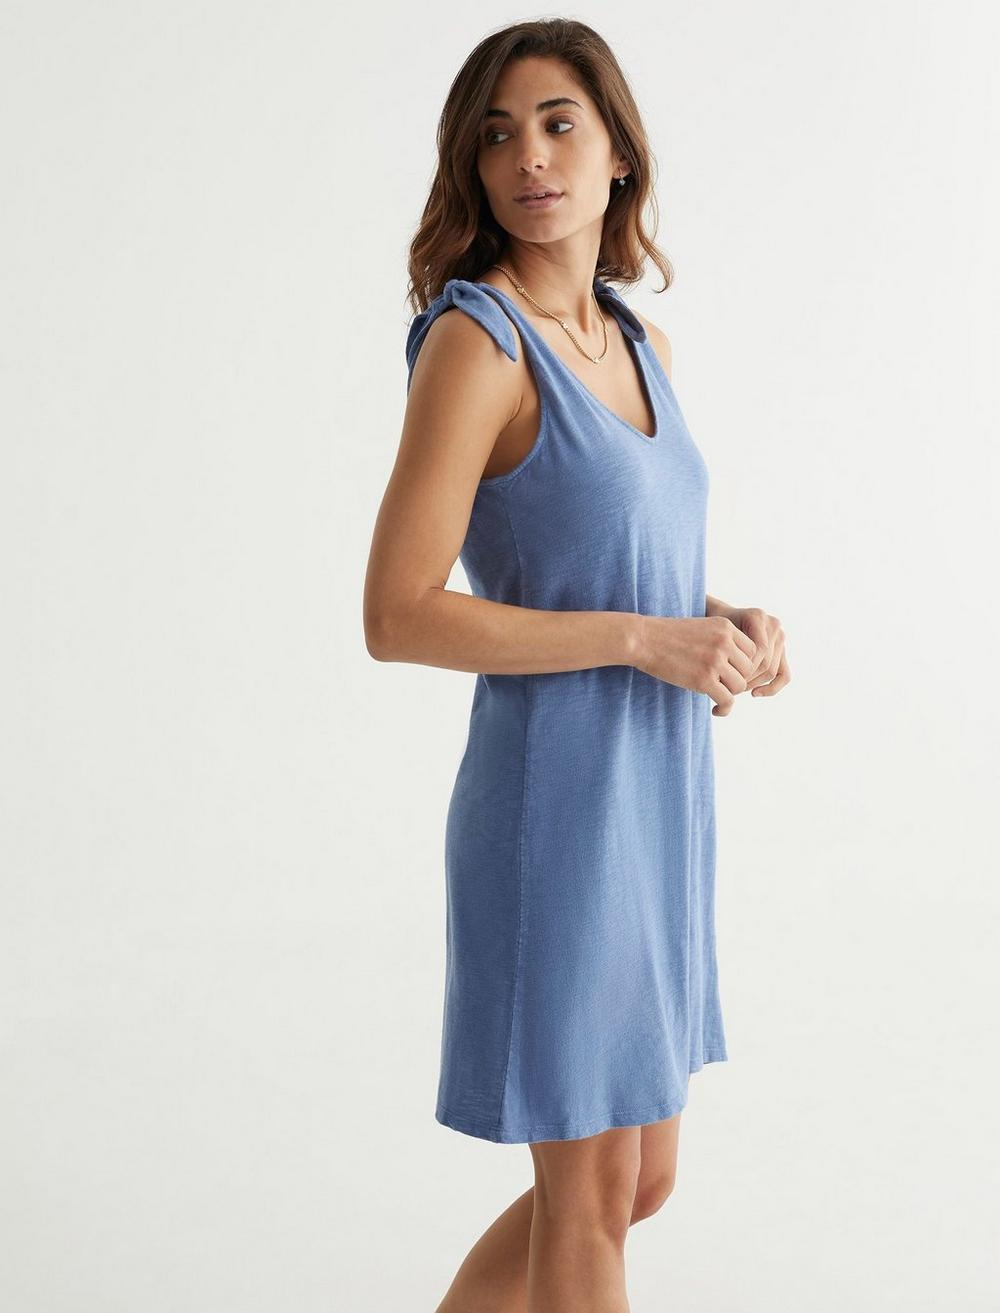 KNOTTED TANK DRESS, image 3